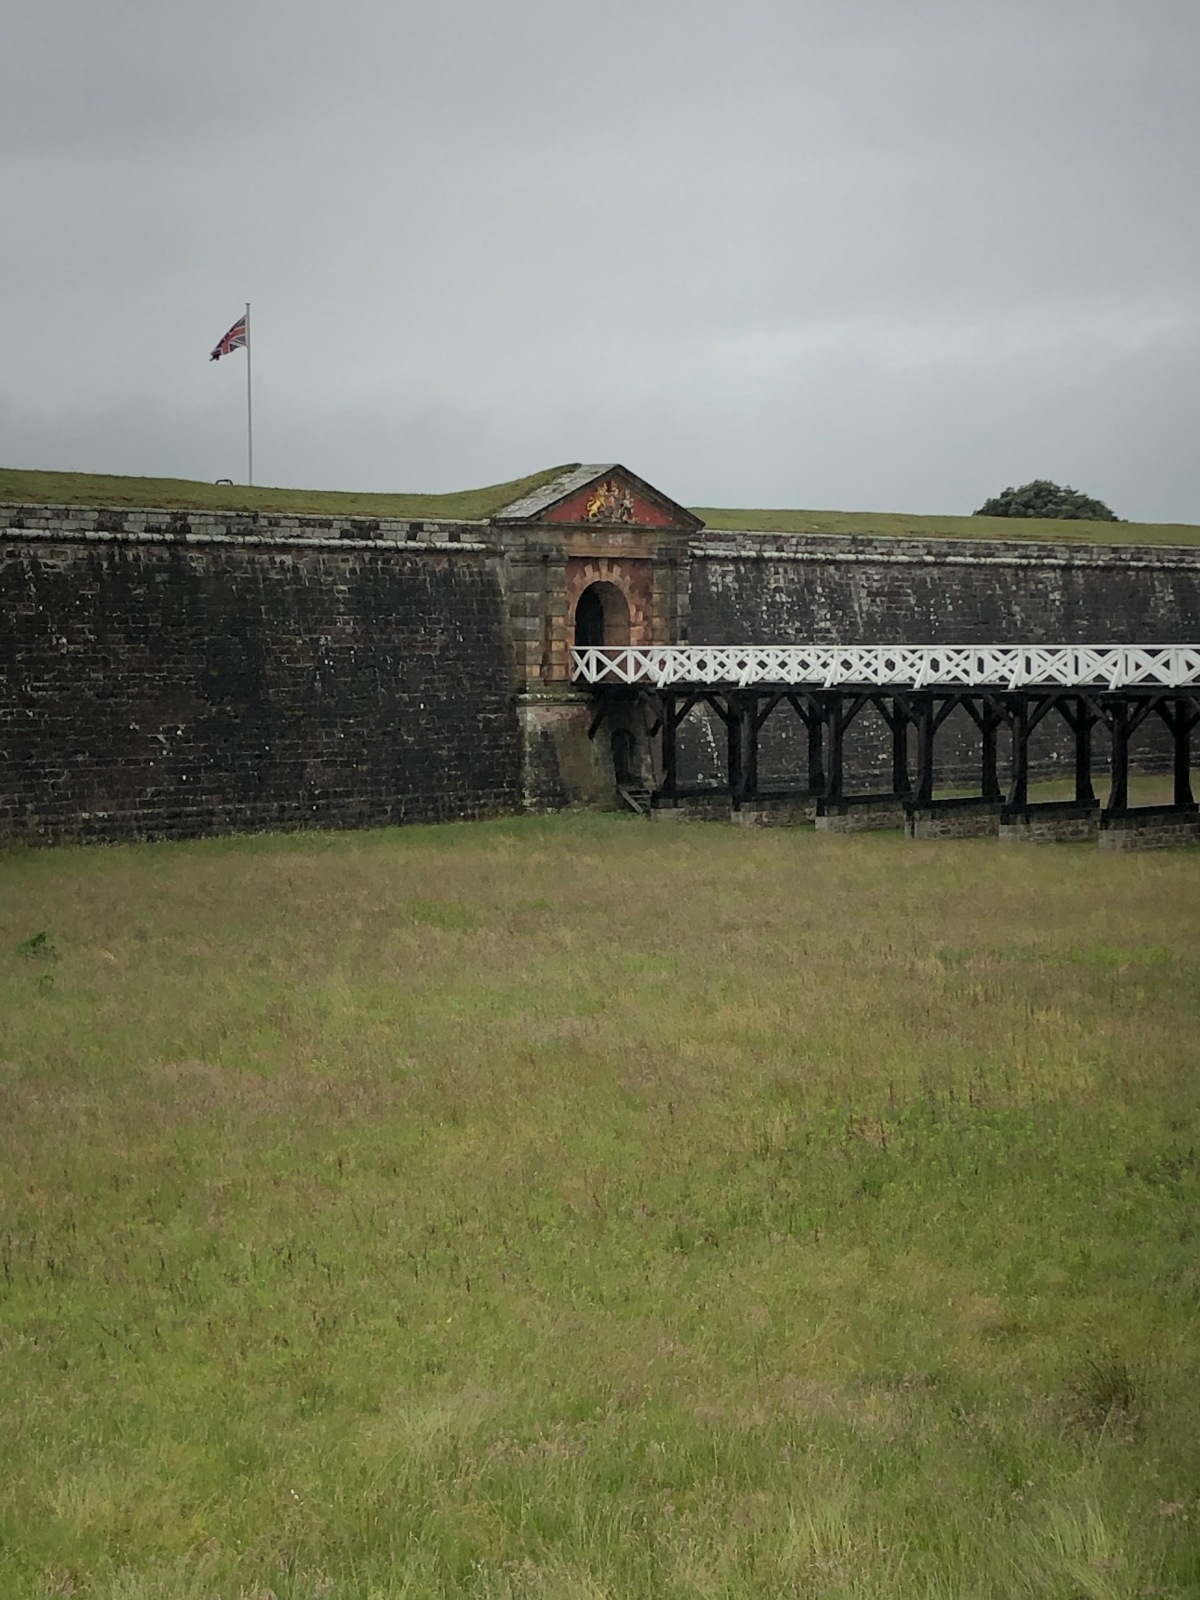 The Principal Bridge that leads into the main garrison.